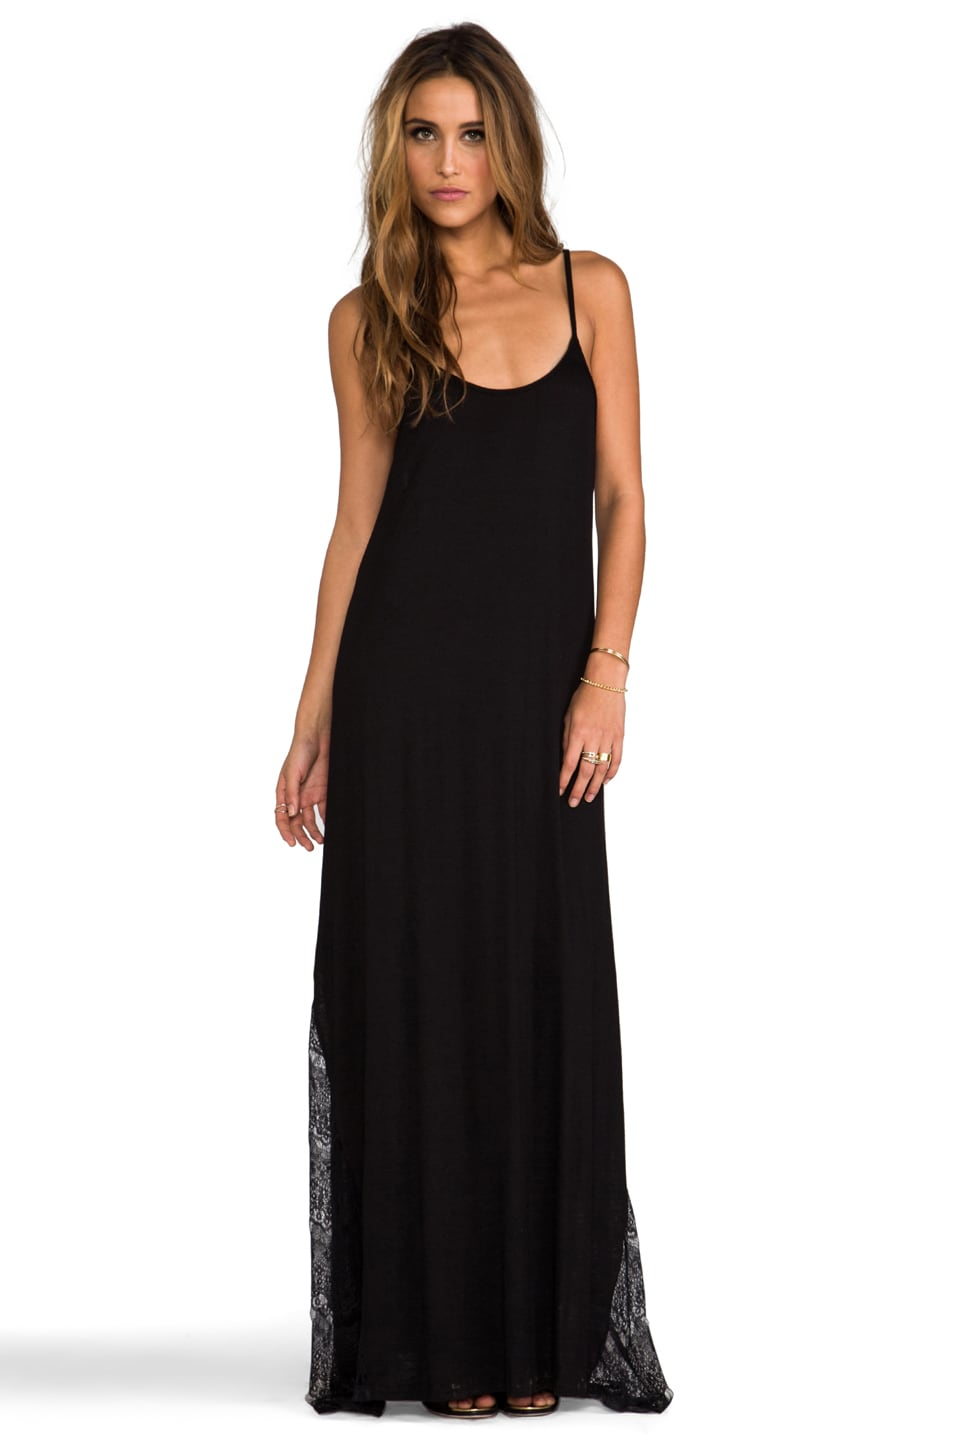 WOODLEIGH Marcy Dress in Black